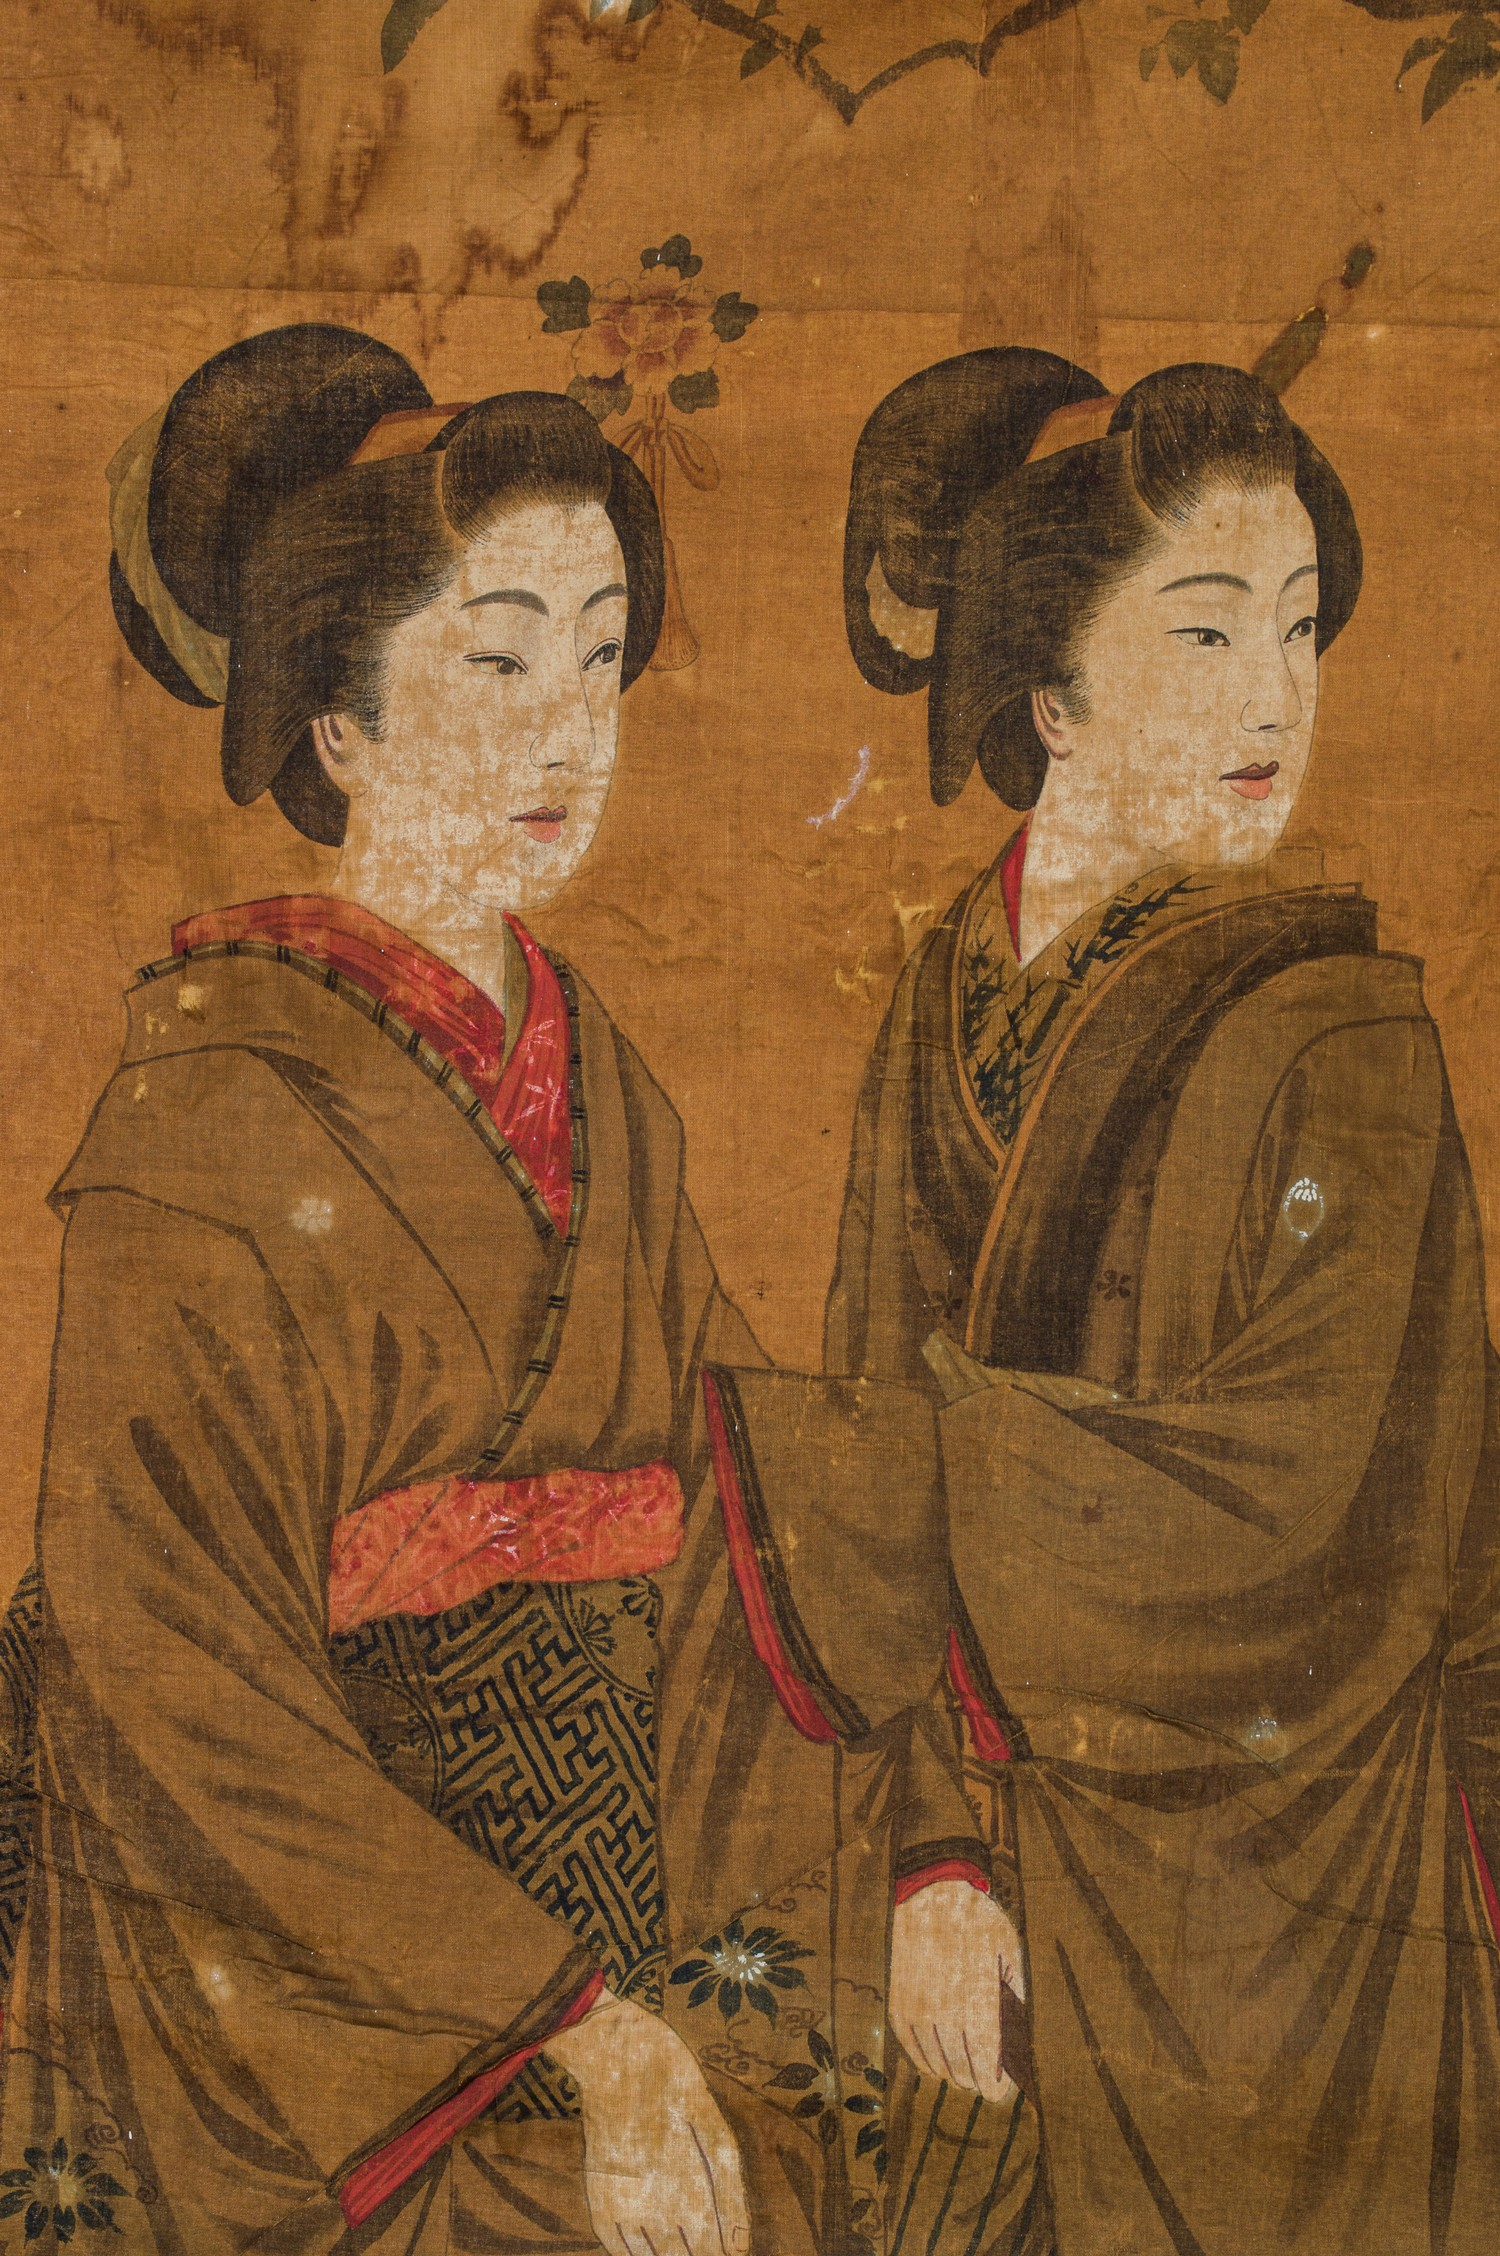 A JAPANESE INK AND WATERCOLOUR ON FABRIC 'GEISHAS AND SHOGUN' PAINTING, MEIJI PERIOD, 1868 - 1912 - Image 2 of 3